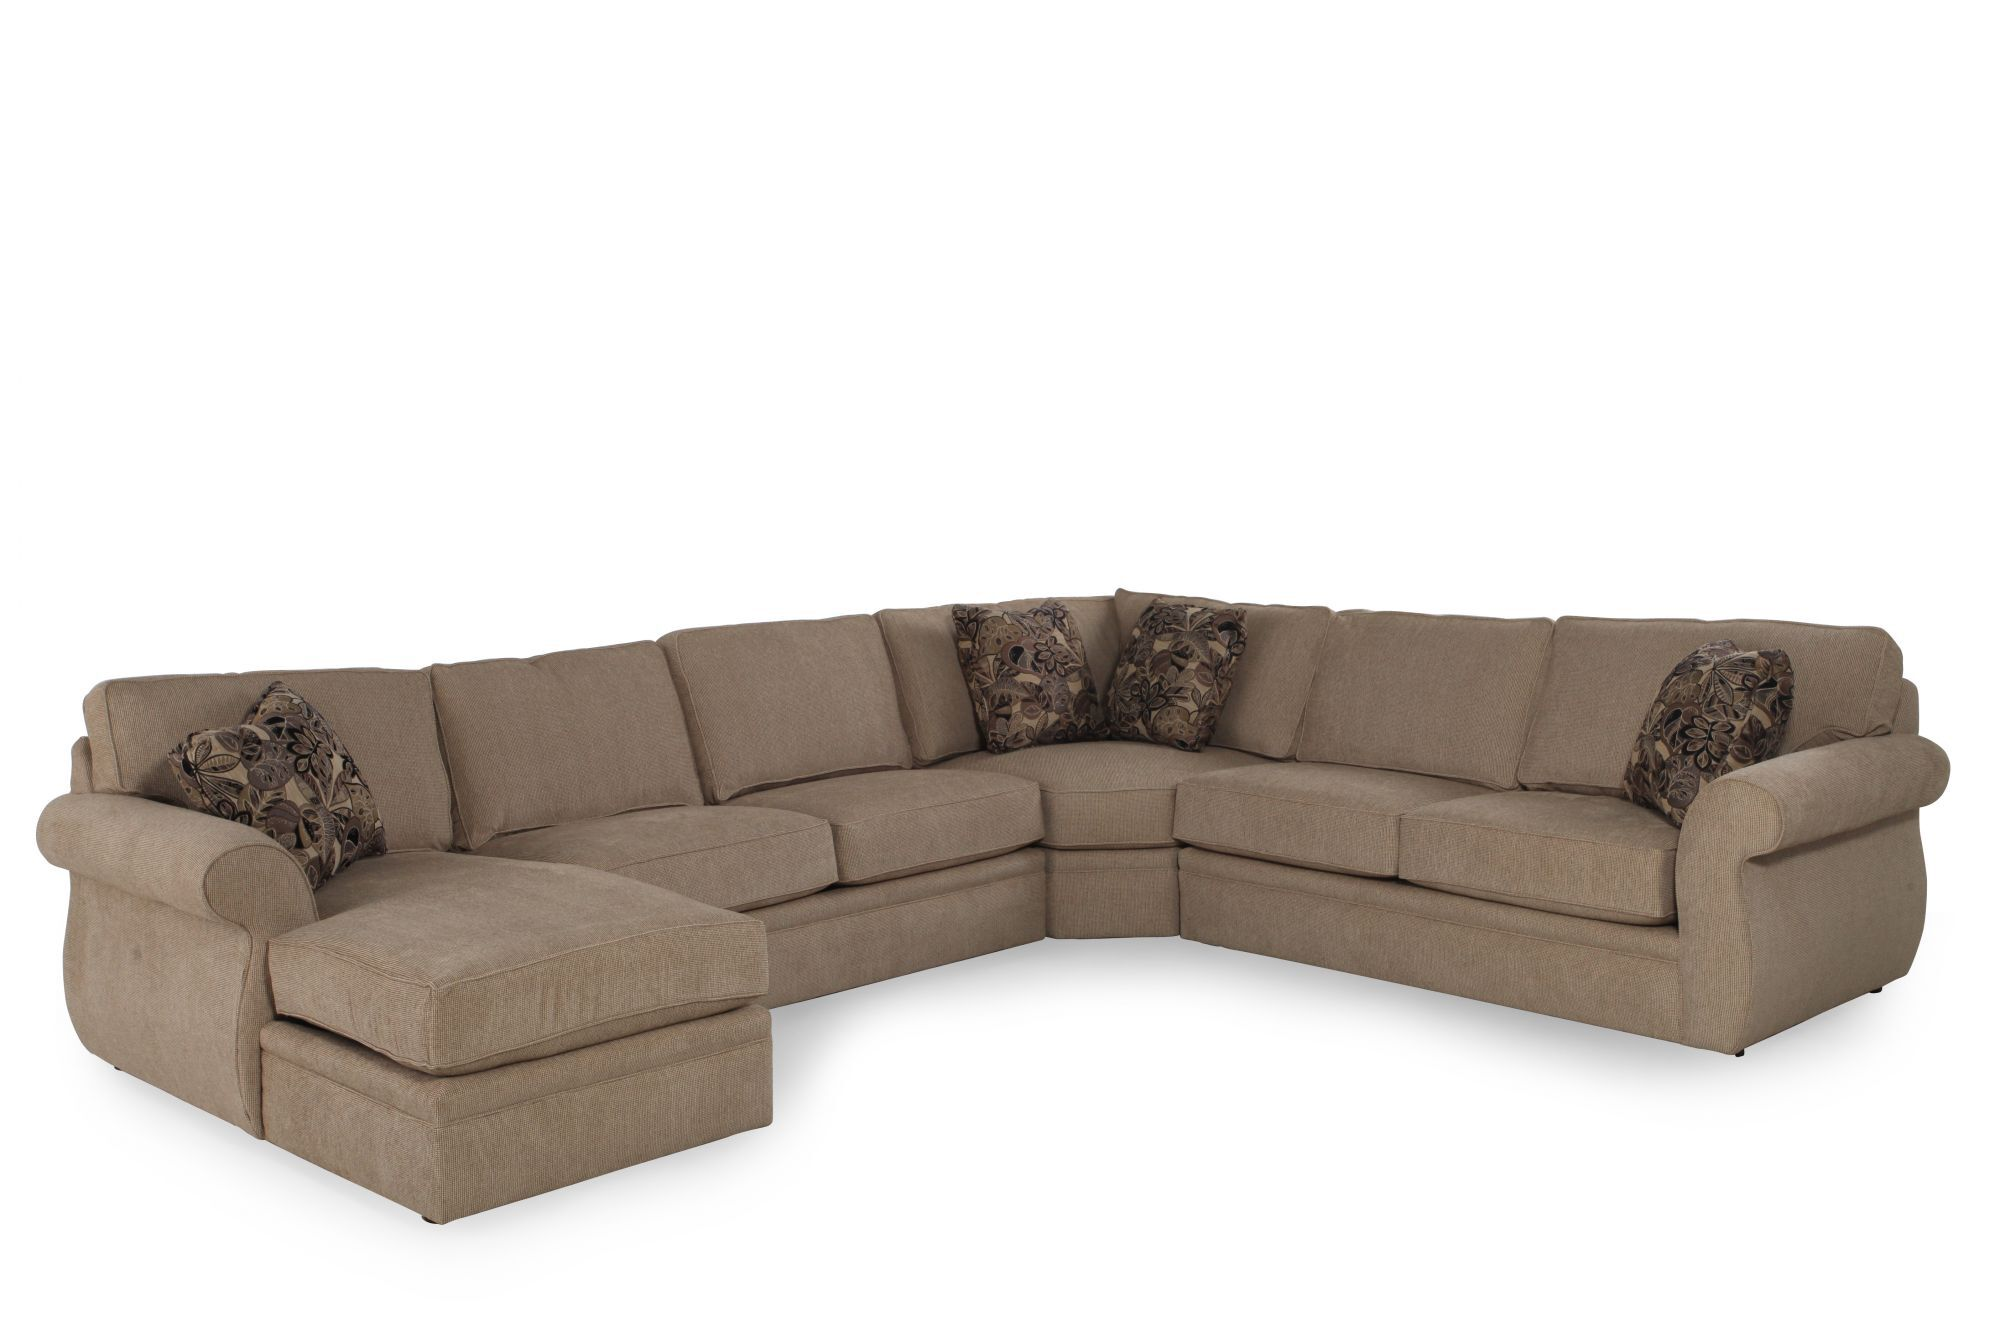 Broyhill Veronica Sand Sectional  sc 1 st  Mathis Brothers : broyhill sectionals - Sectionals, Sofas & Couches